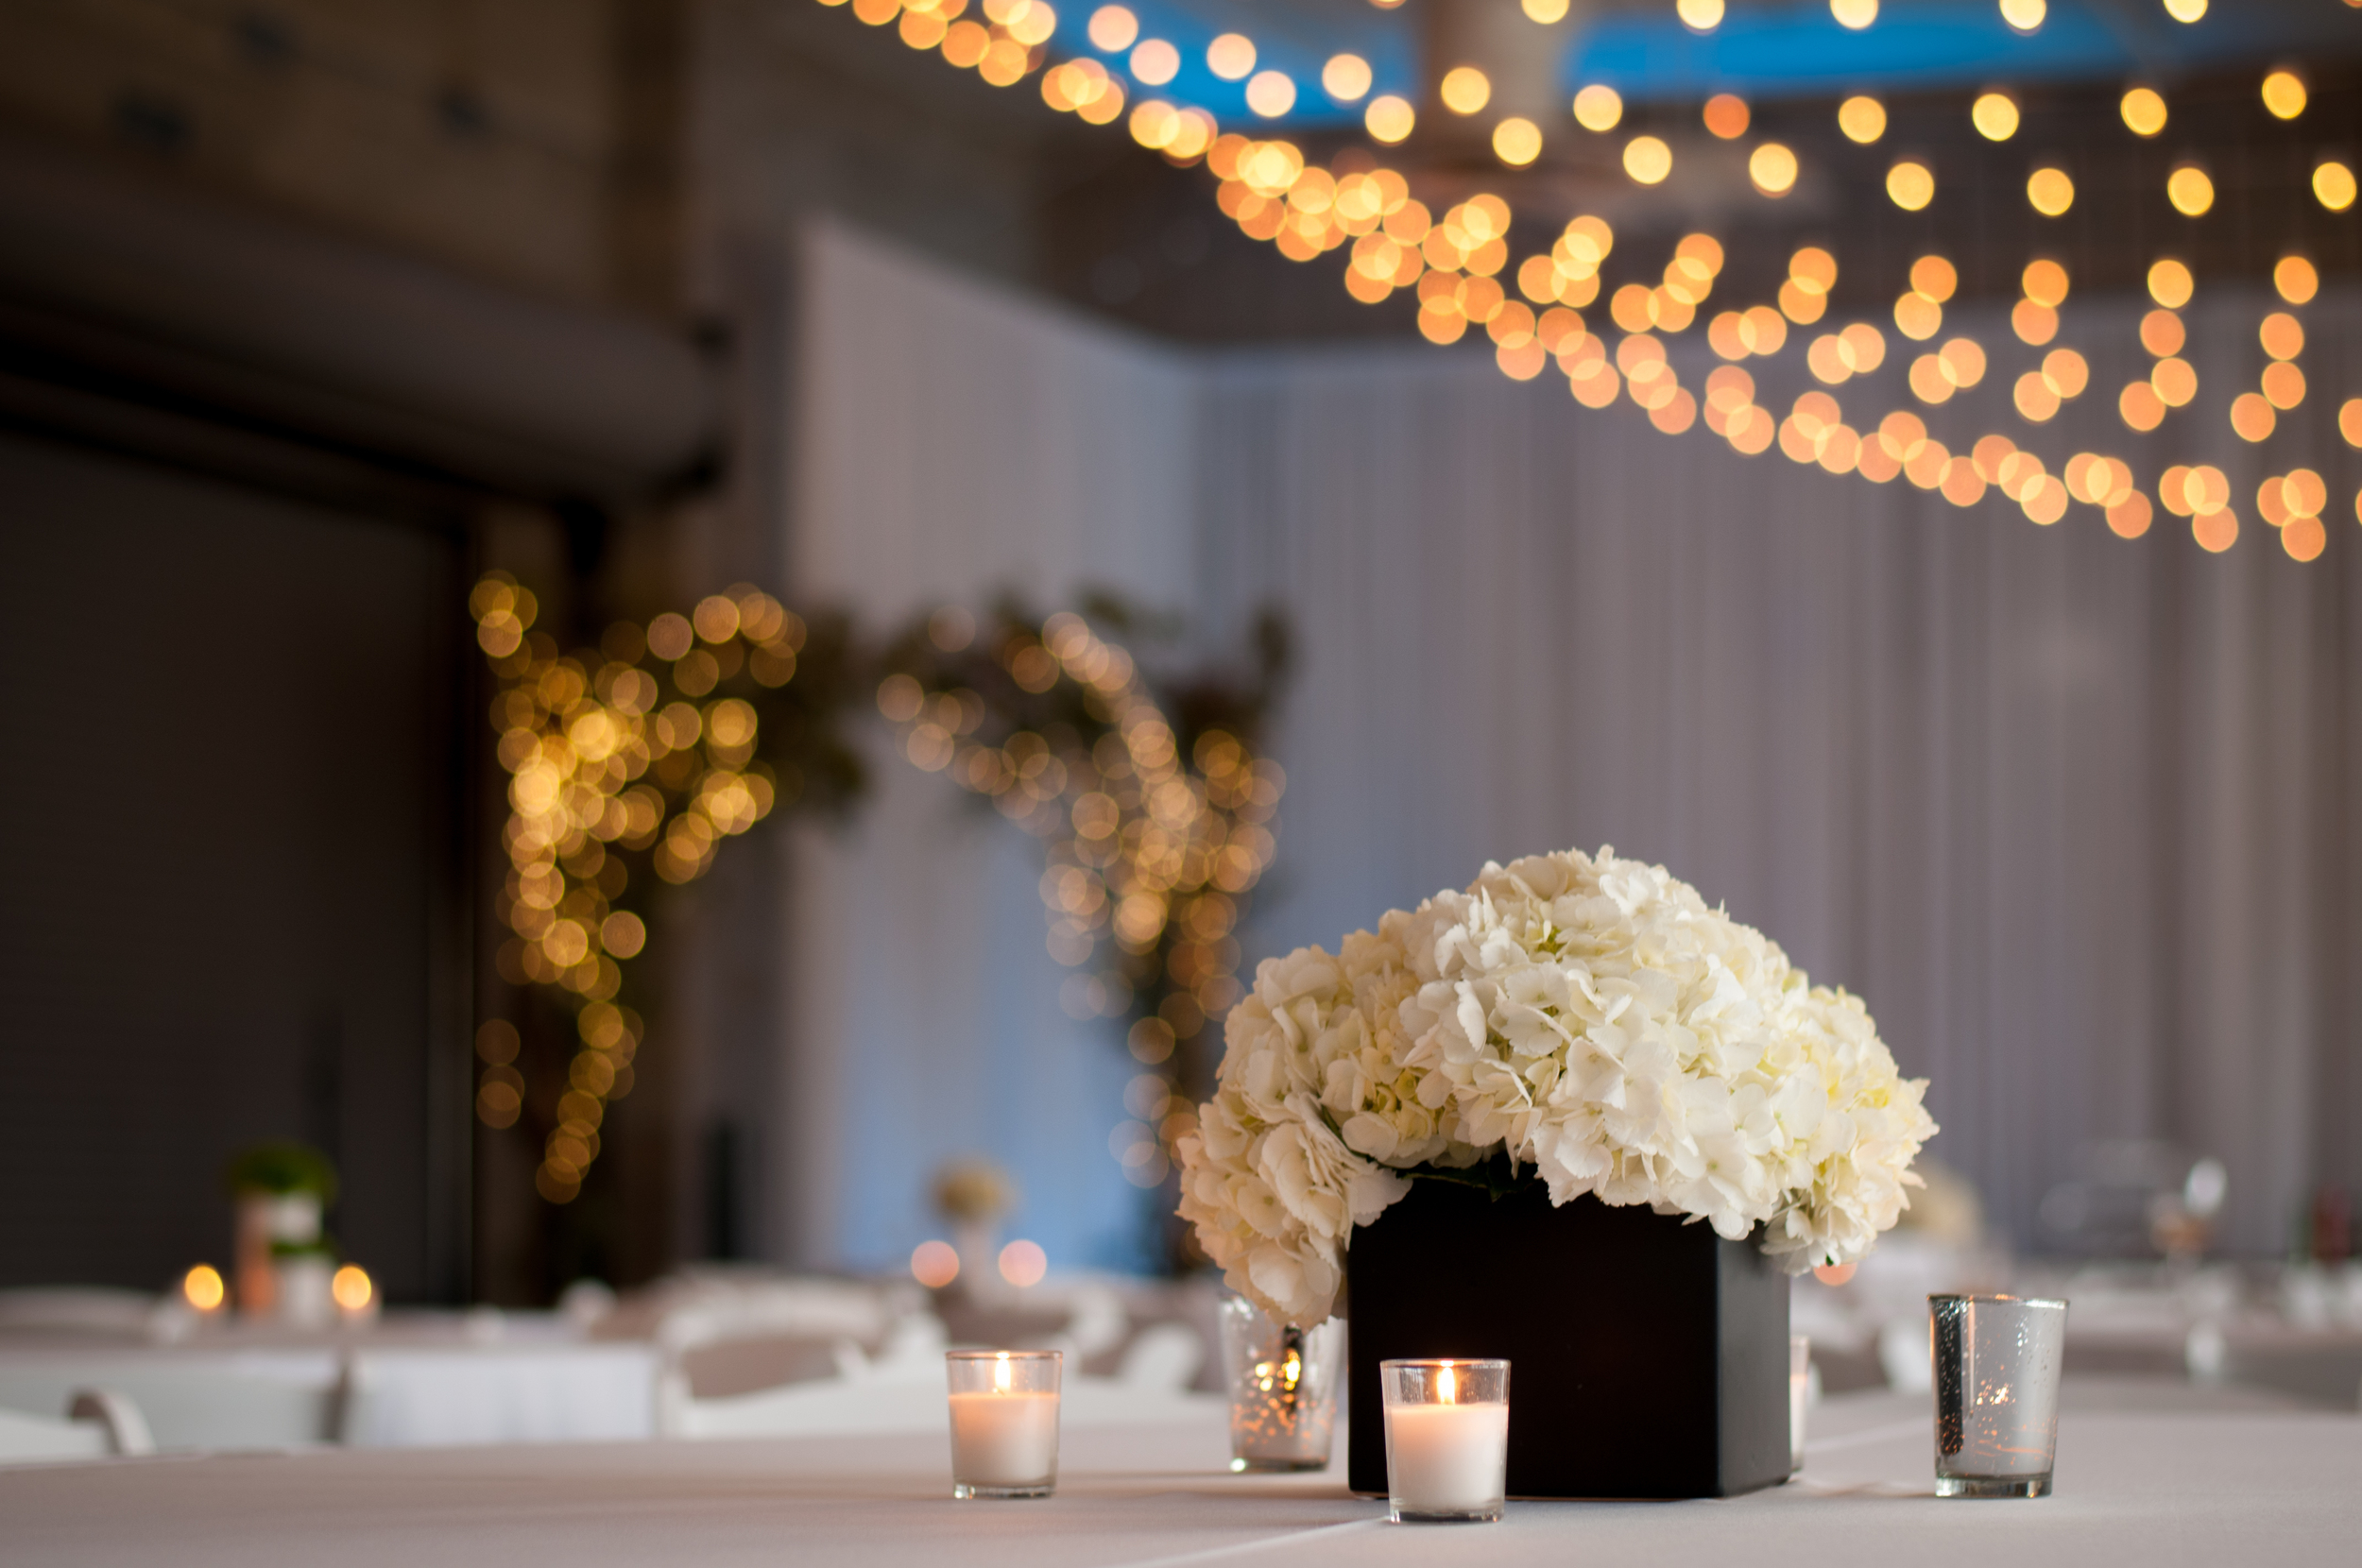 meredith donnelly photography-109.jpg